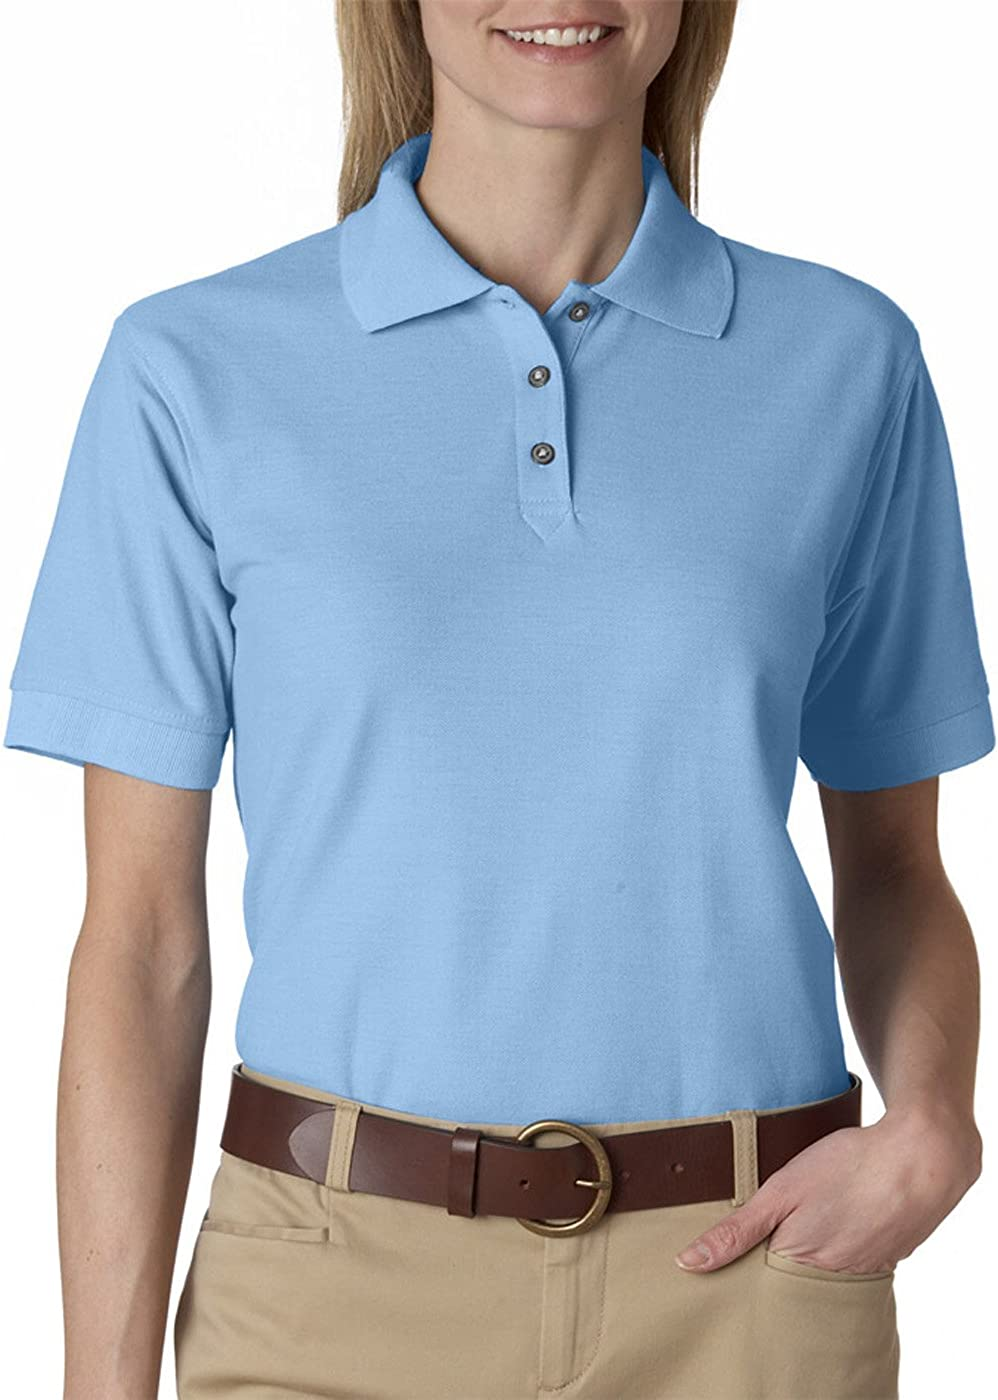 Clementine womens Whisper Pique Polo Tee : Sports & Outdoors